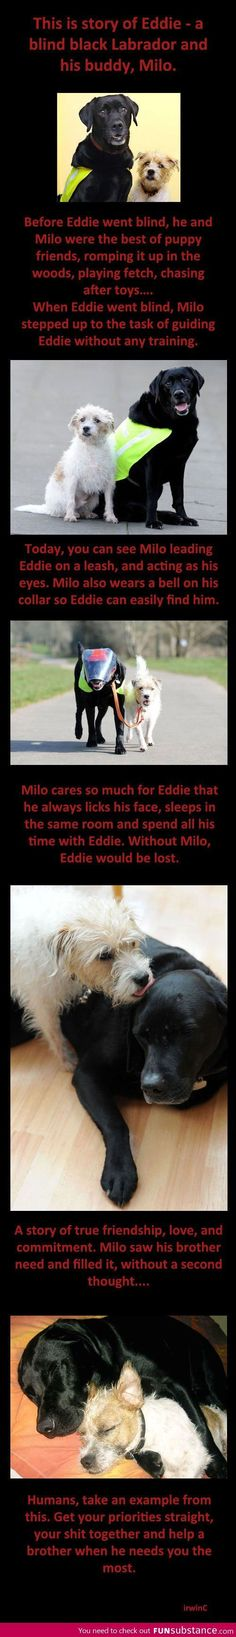 this is why i love animals more than people <3